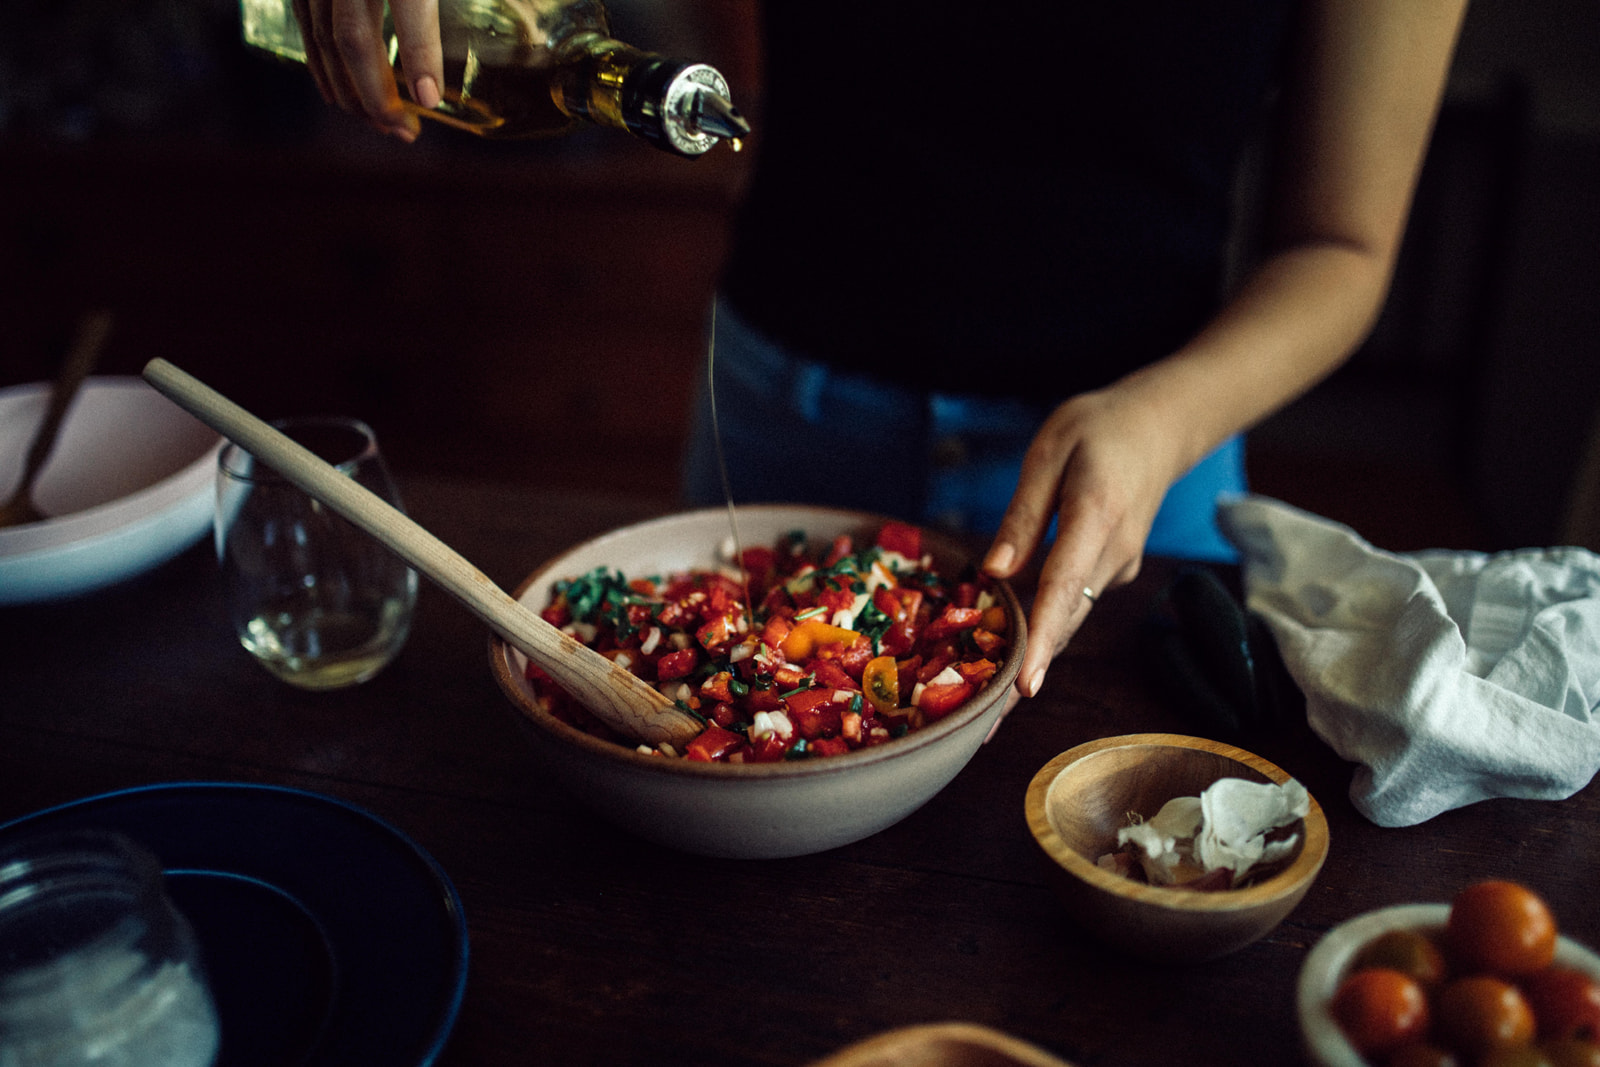 The Salsa We Bring to Every Potluck The Full Table Blog